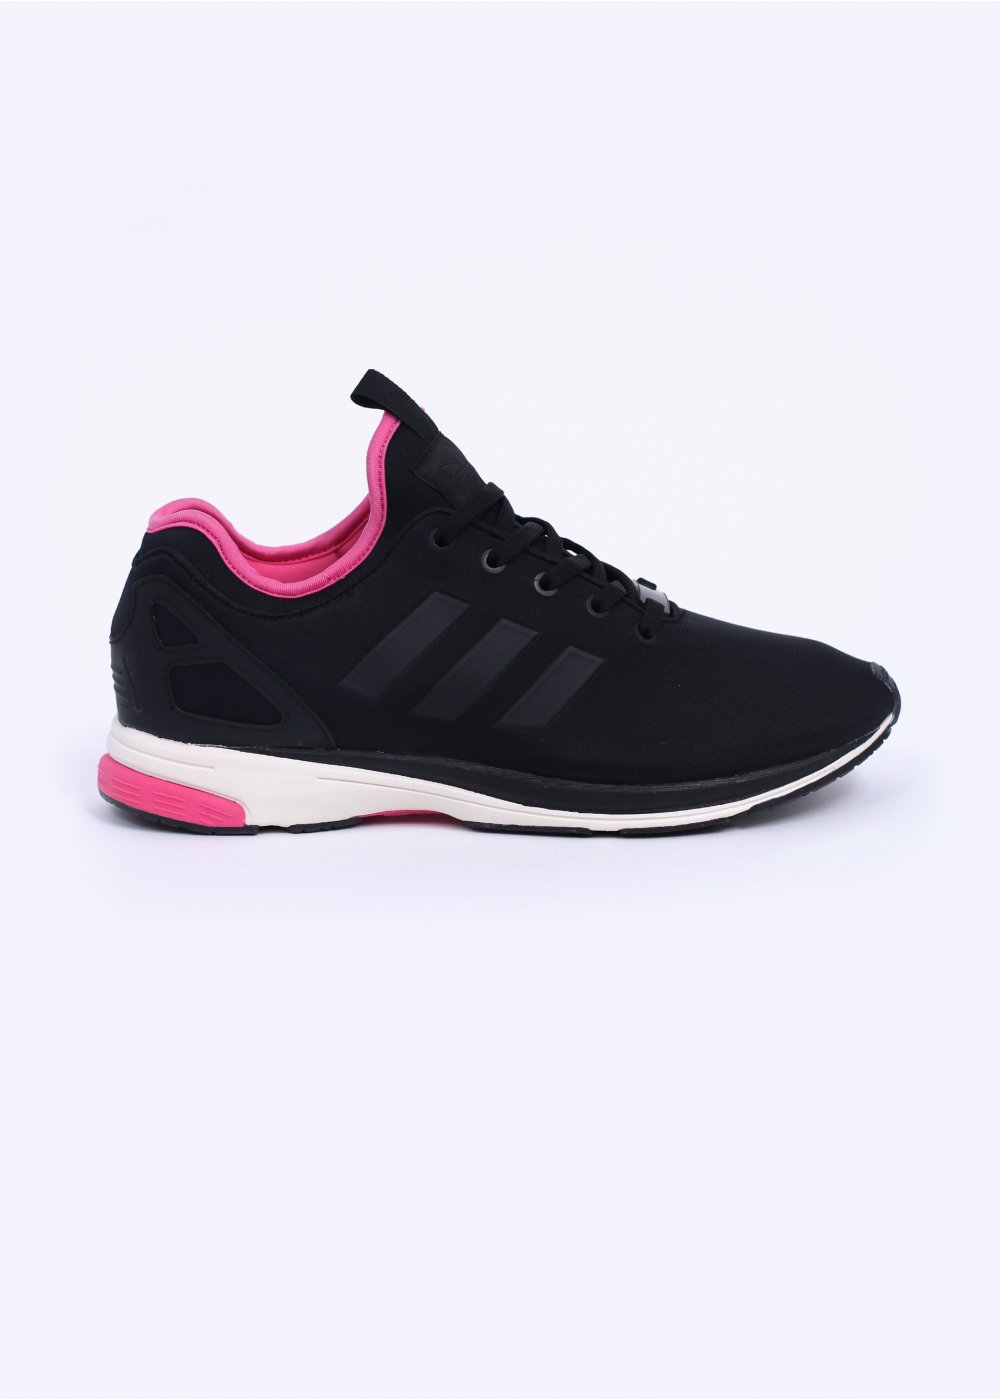 half off 263c3 08c1b adidas Originals Footwear ZX Flux Tech NPS Trainers - Black / Pink